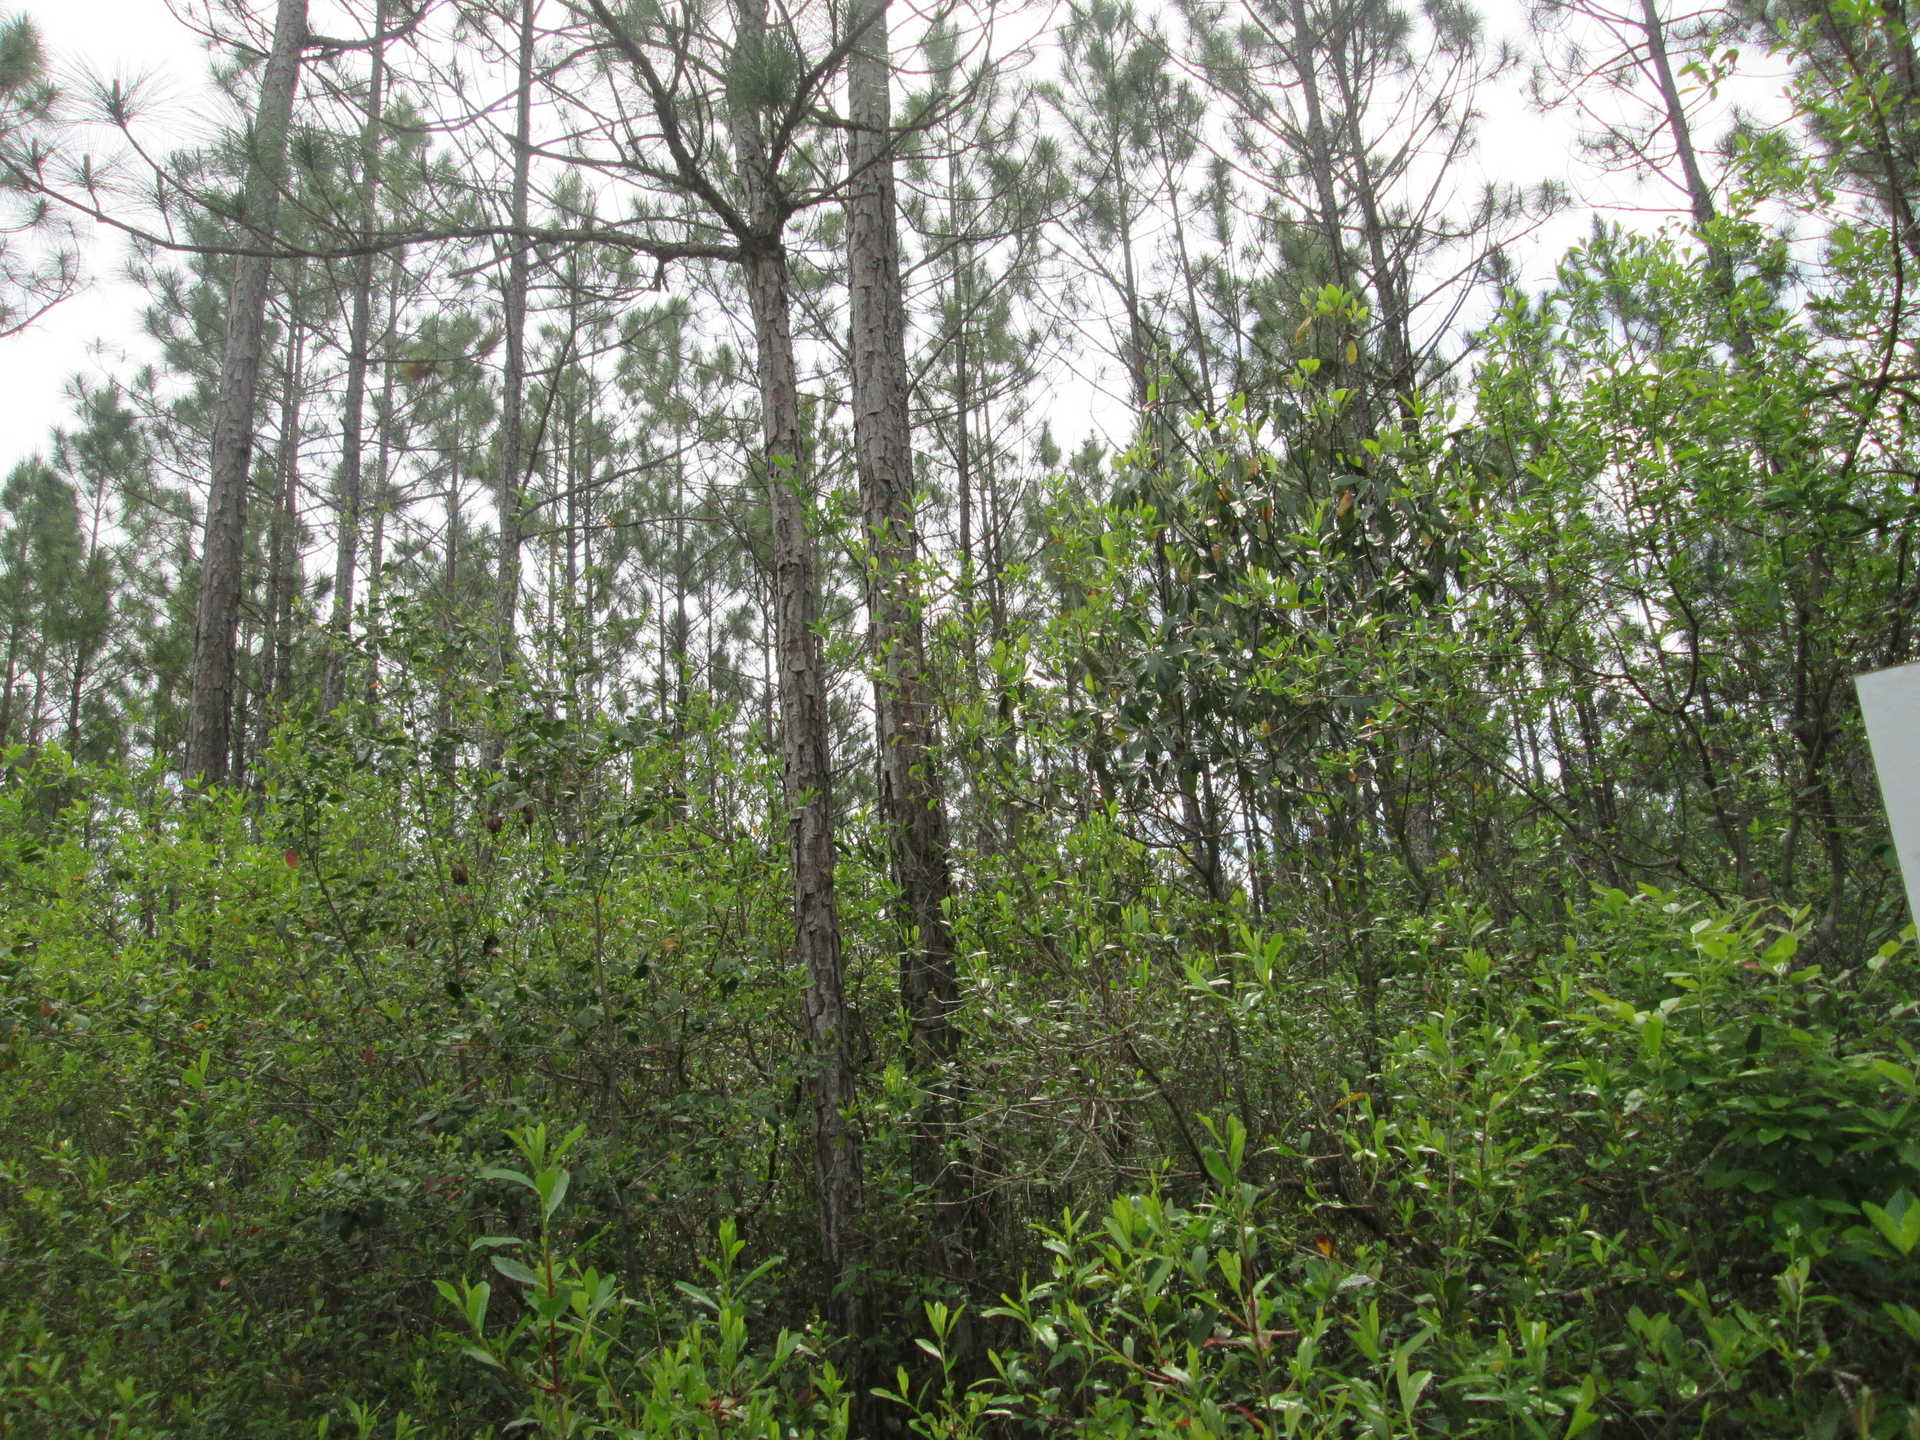 102.87 Acres with 60 Acres of 1 Year Old Pine and Volunteer Woodlands- Only $1,150 per acre image